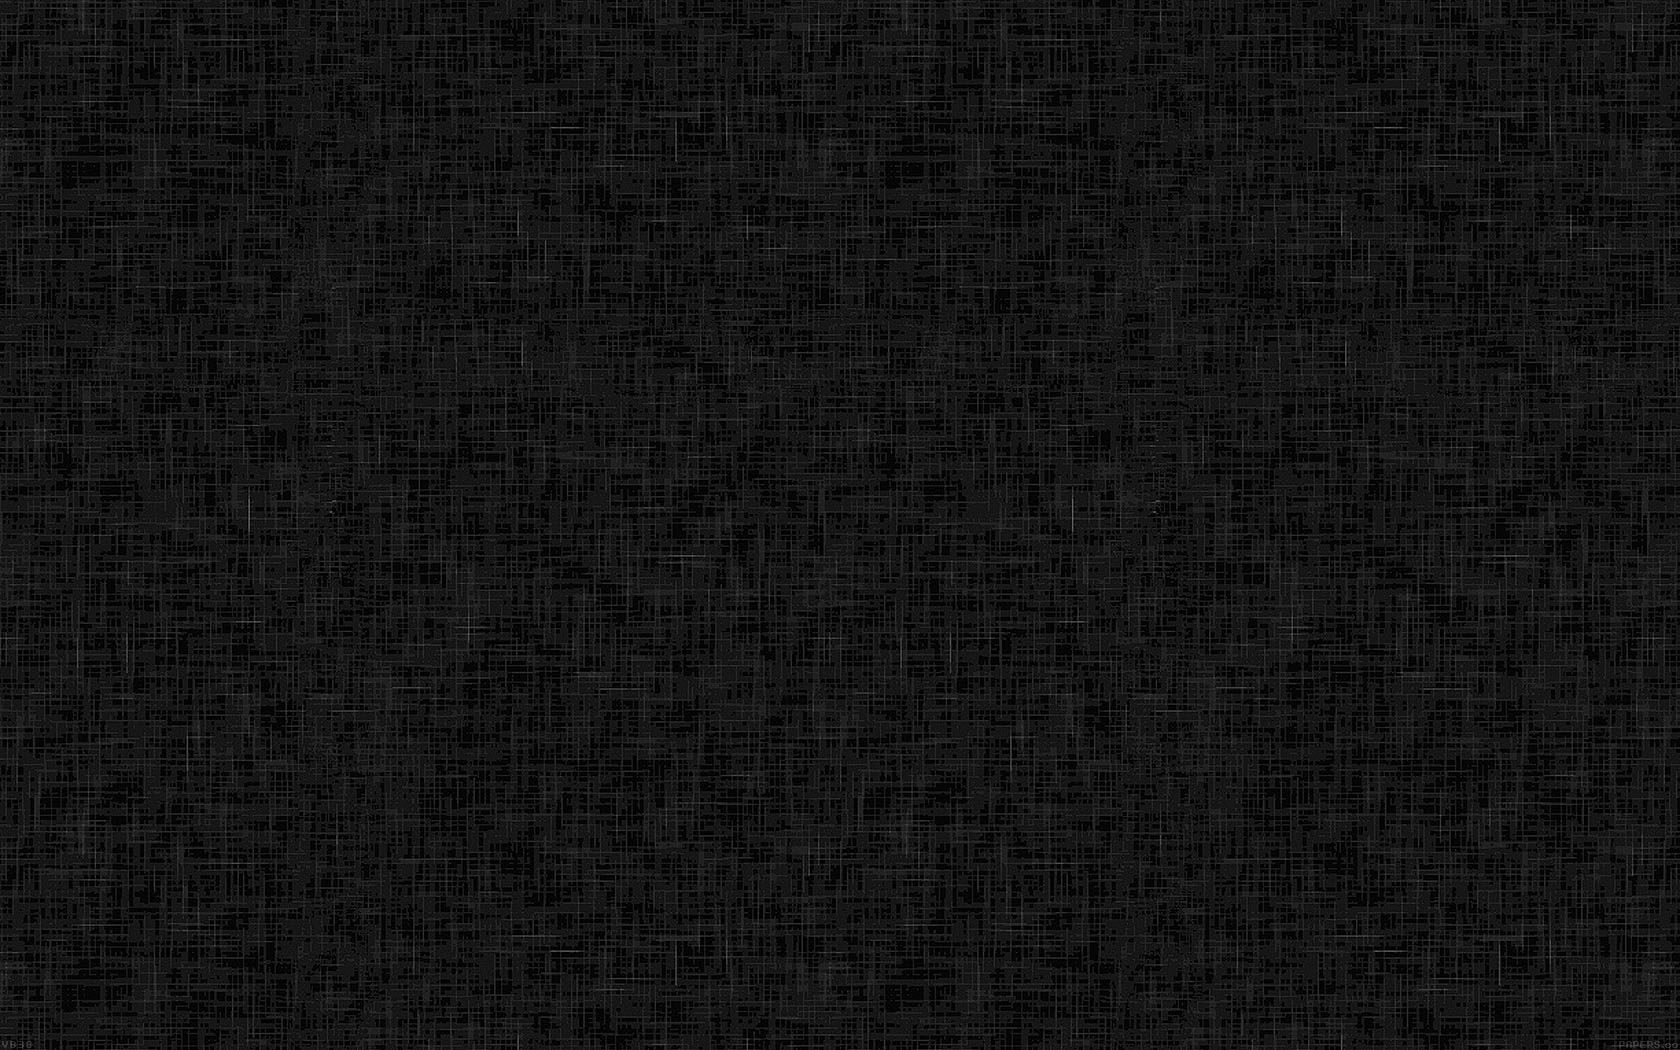 Fall Wallpaper For Iphone 7 Vb38 Wallpaper Furly Black Pattern Texture Papers Co